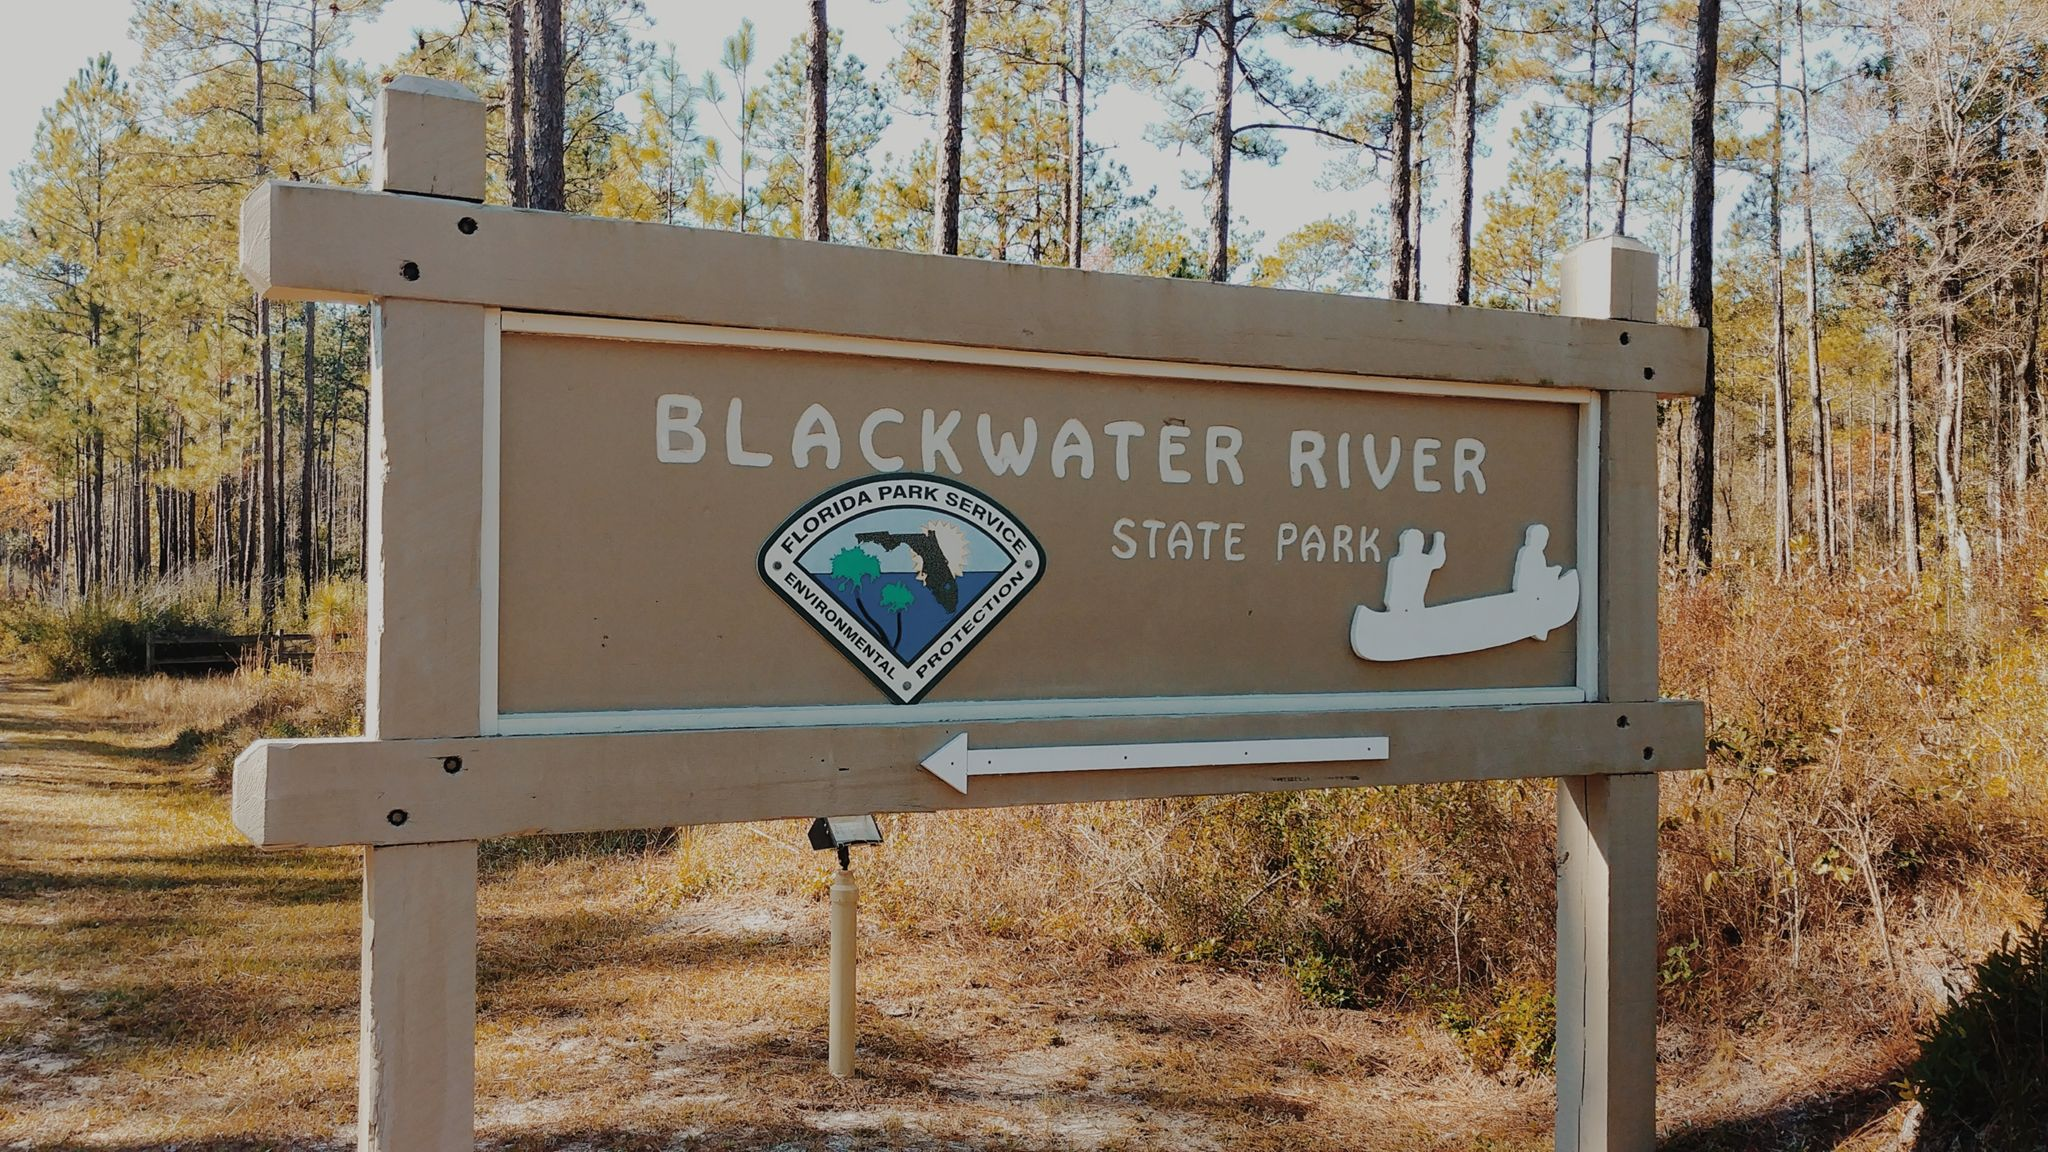 Riders will regroup one last time next to Deaton Bridge—inside Blackwater River State Park—where they'll have a chance to dip their toes in the river before heading home.